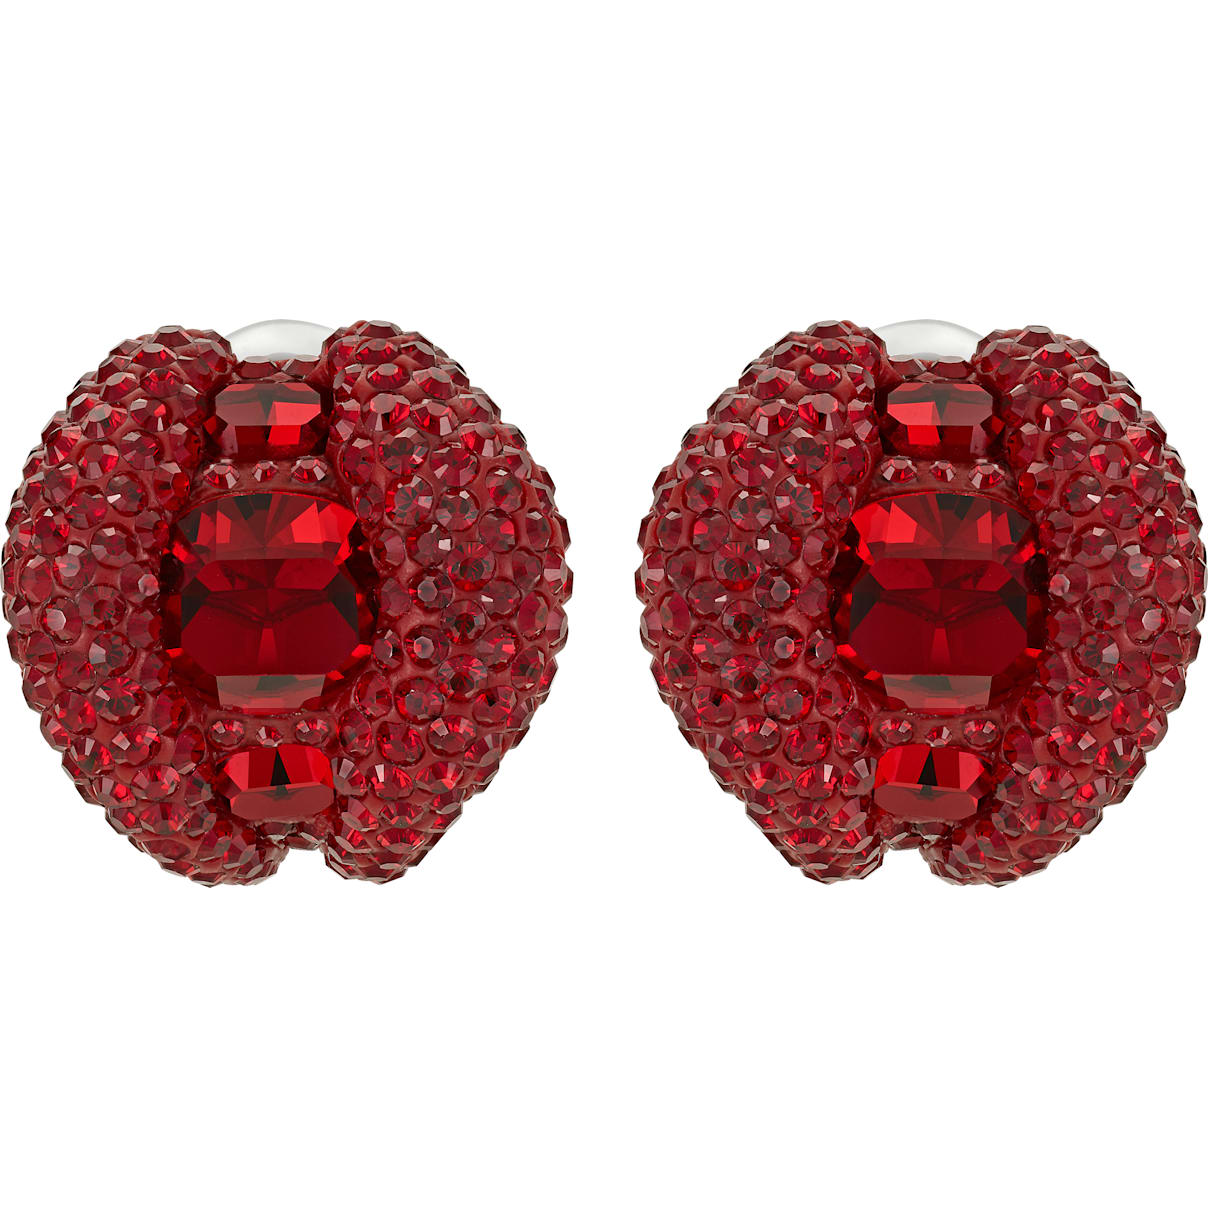 Swarovski Tigris Stud Clip Earrings, Red, Palladium plated